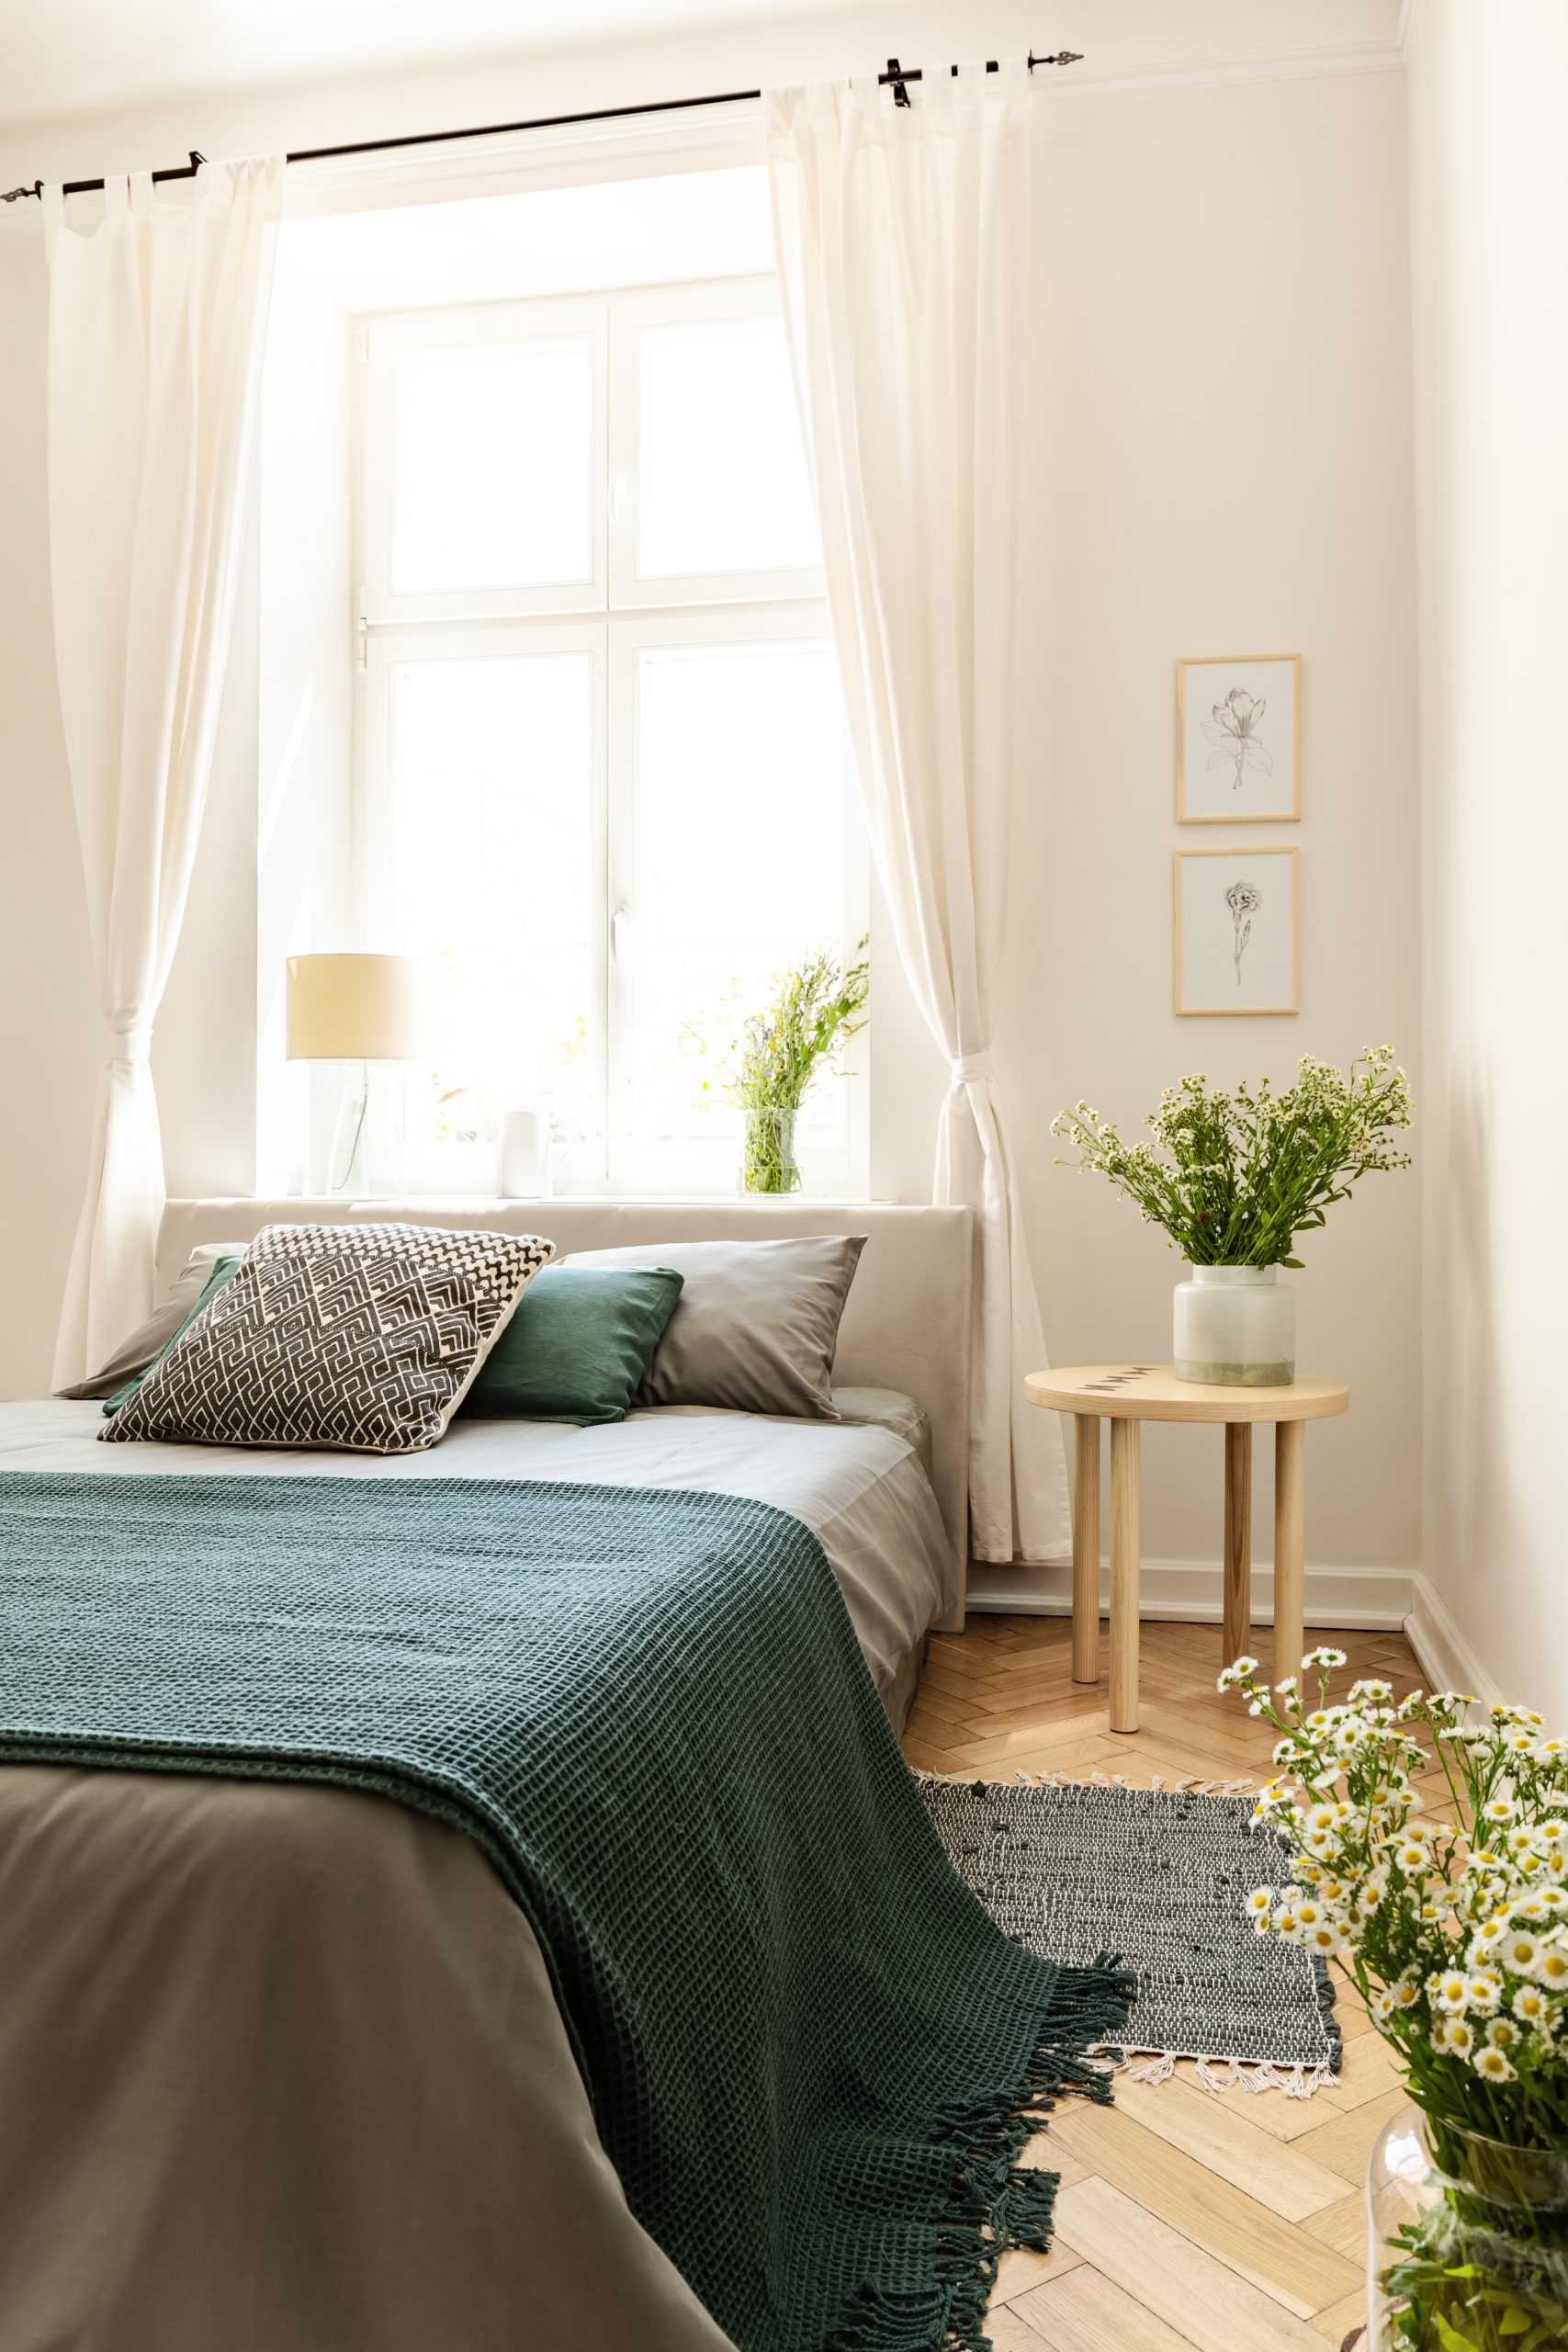 Green blanket on bed next to table with plant in bedroom interior with drapes at window. Real photo